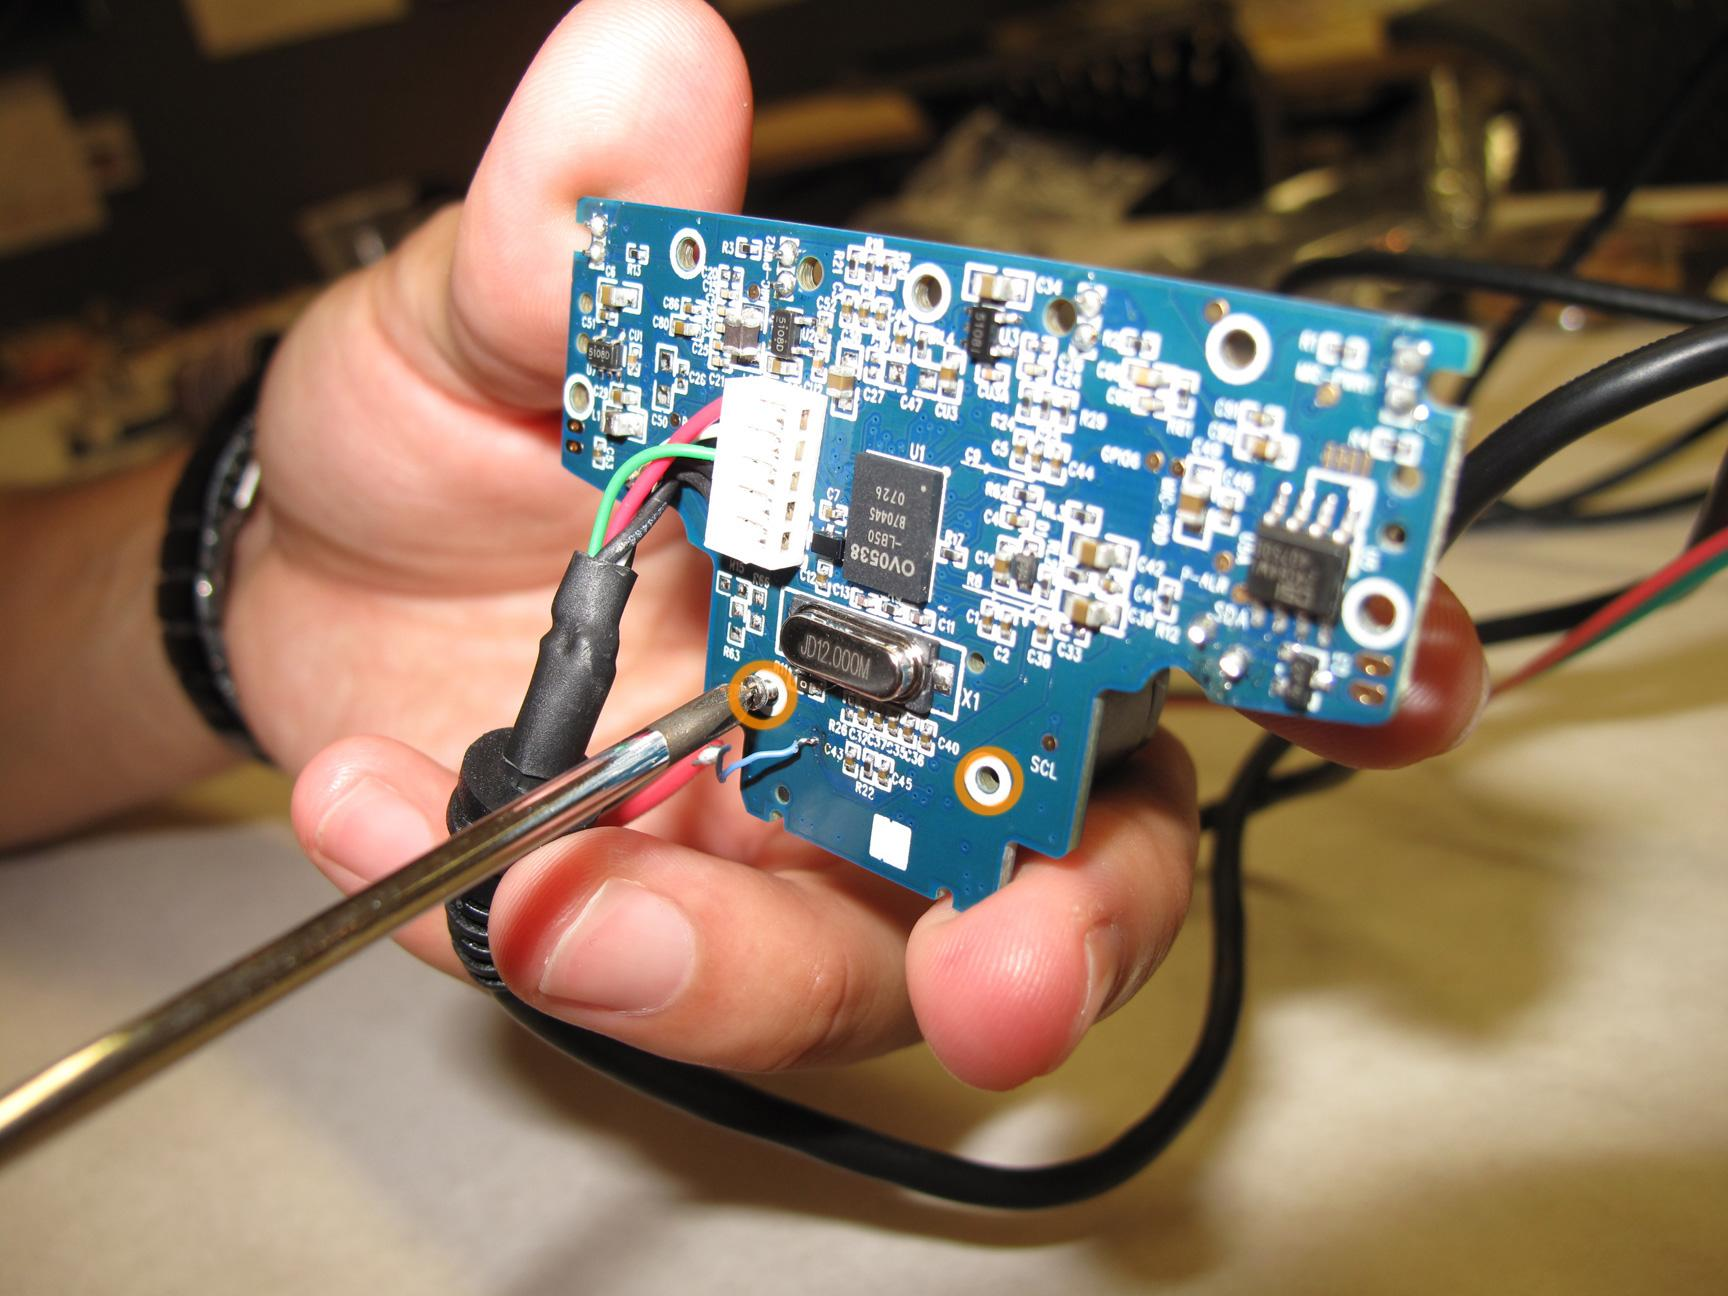 Instructablescom 20 Unbelievable Arduino Projects Circuit Tracker And Breaker Finder Testers Amazon Detach The Lens Keep Both Screws See Image Here